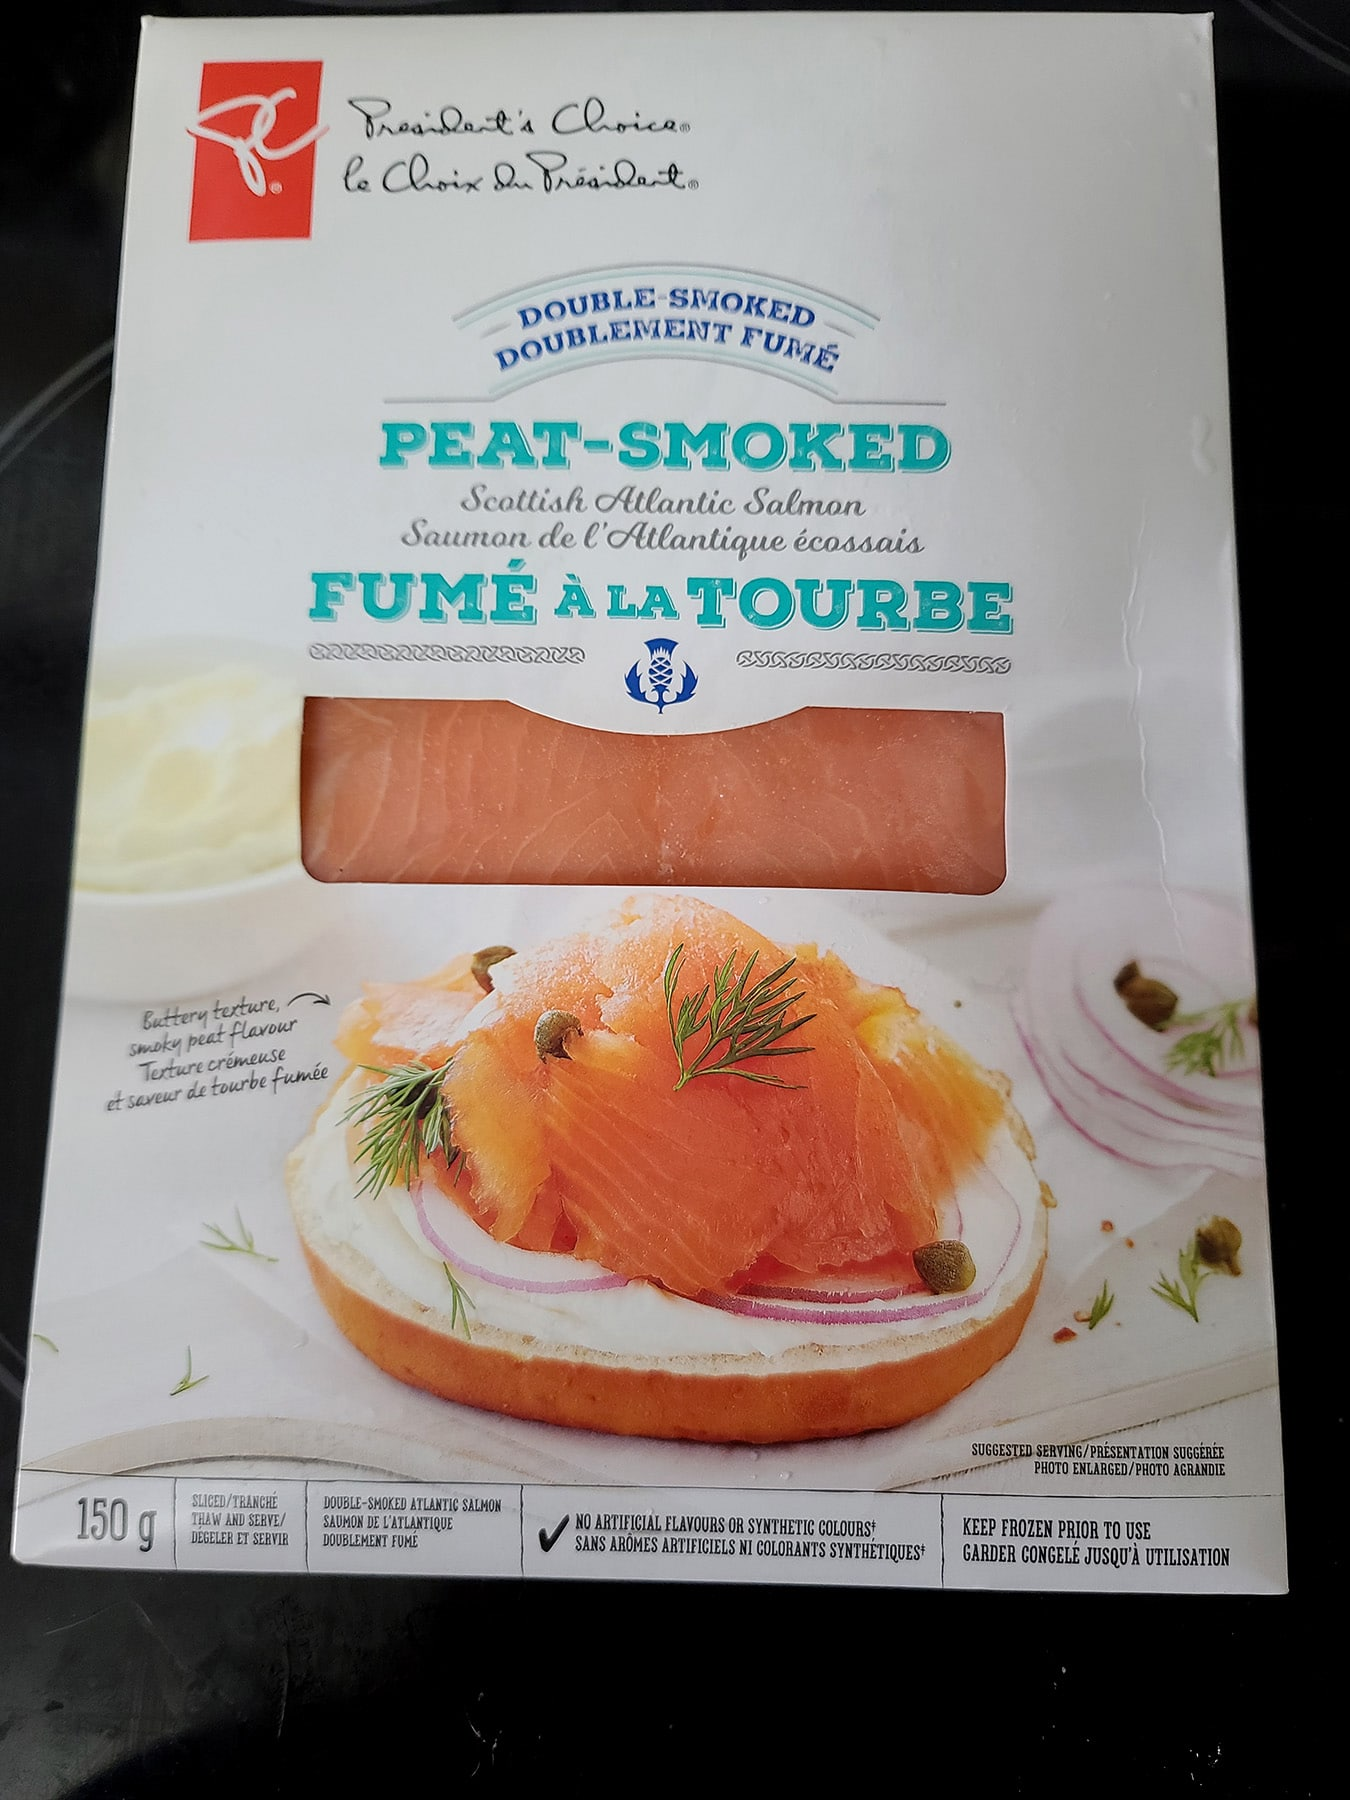 A pack of Presidents Choice Peat Smoked Salmon.